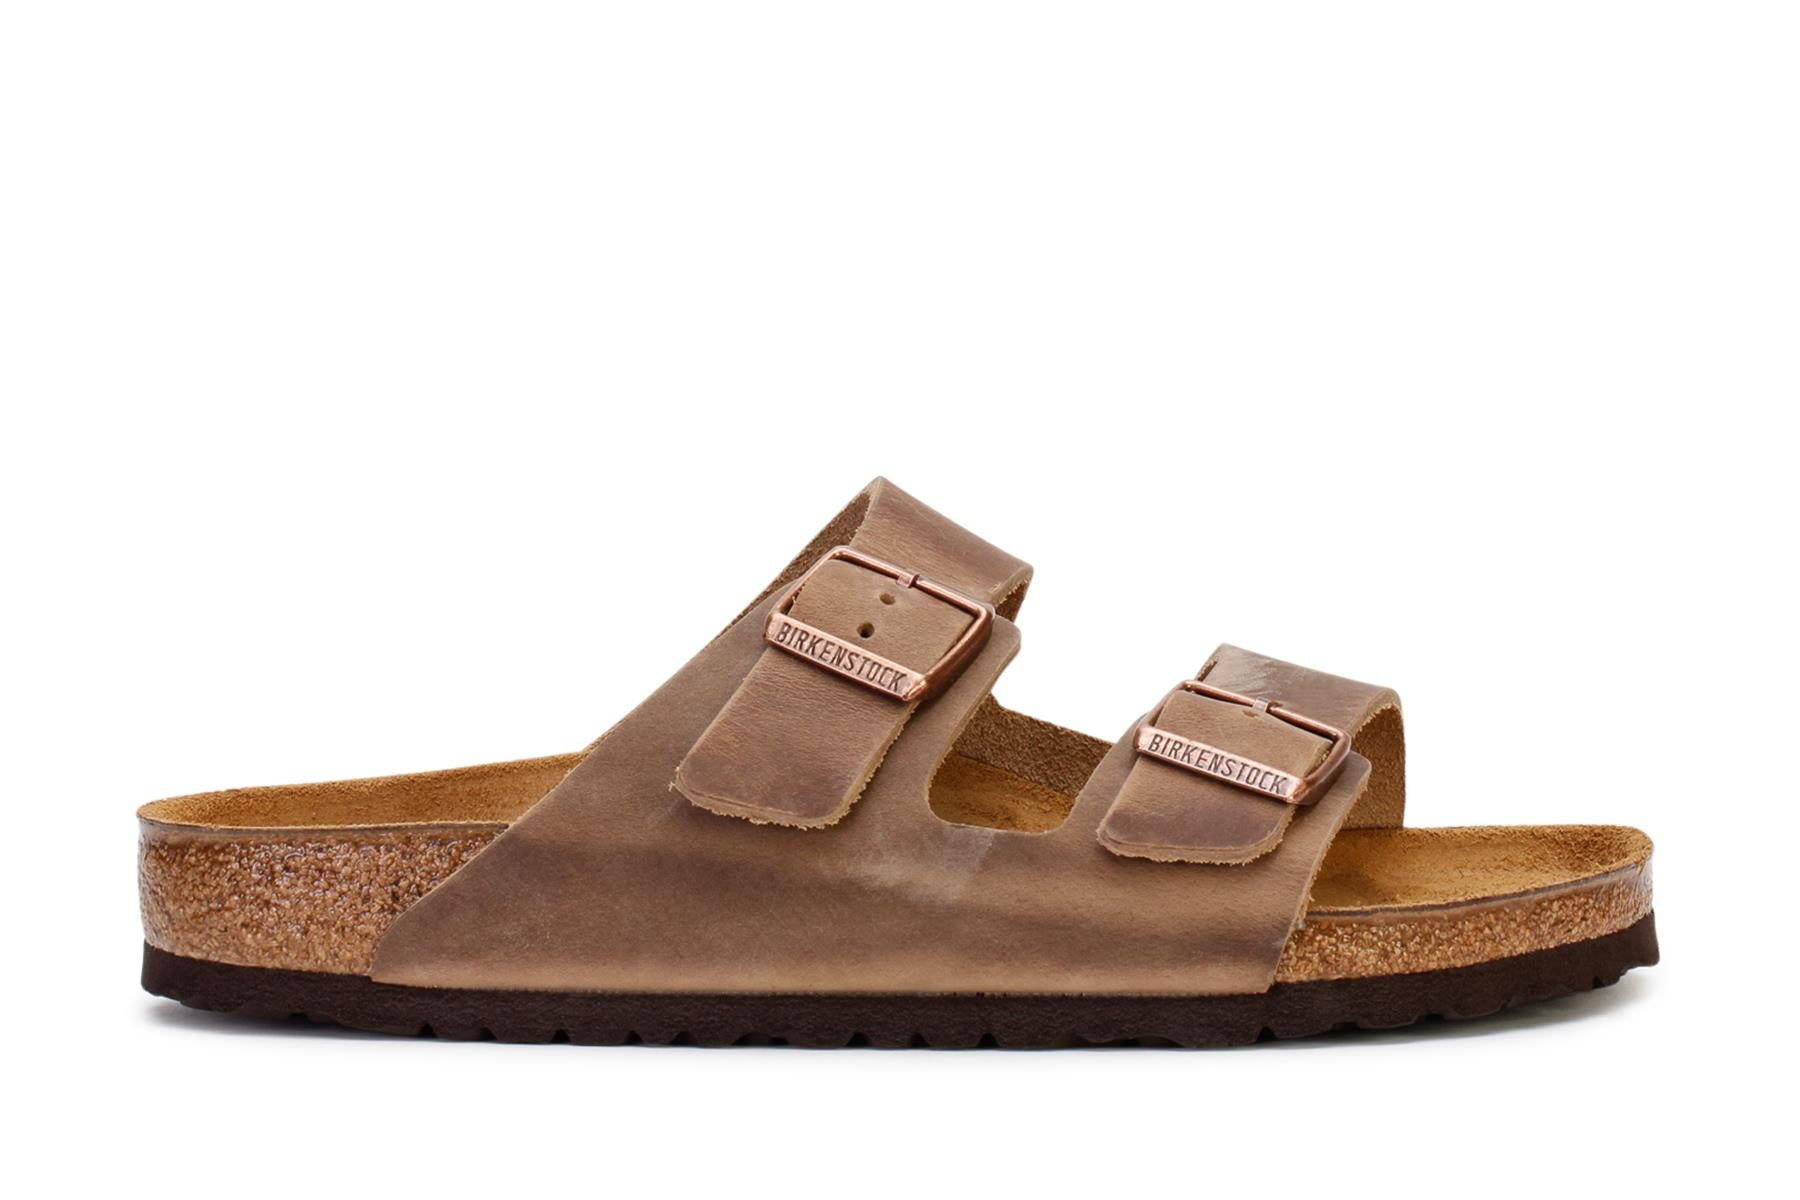 birkenstock-mens-slide-sandals-arizona-oiled-leather-tabacco-brown-352202-main